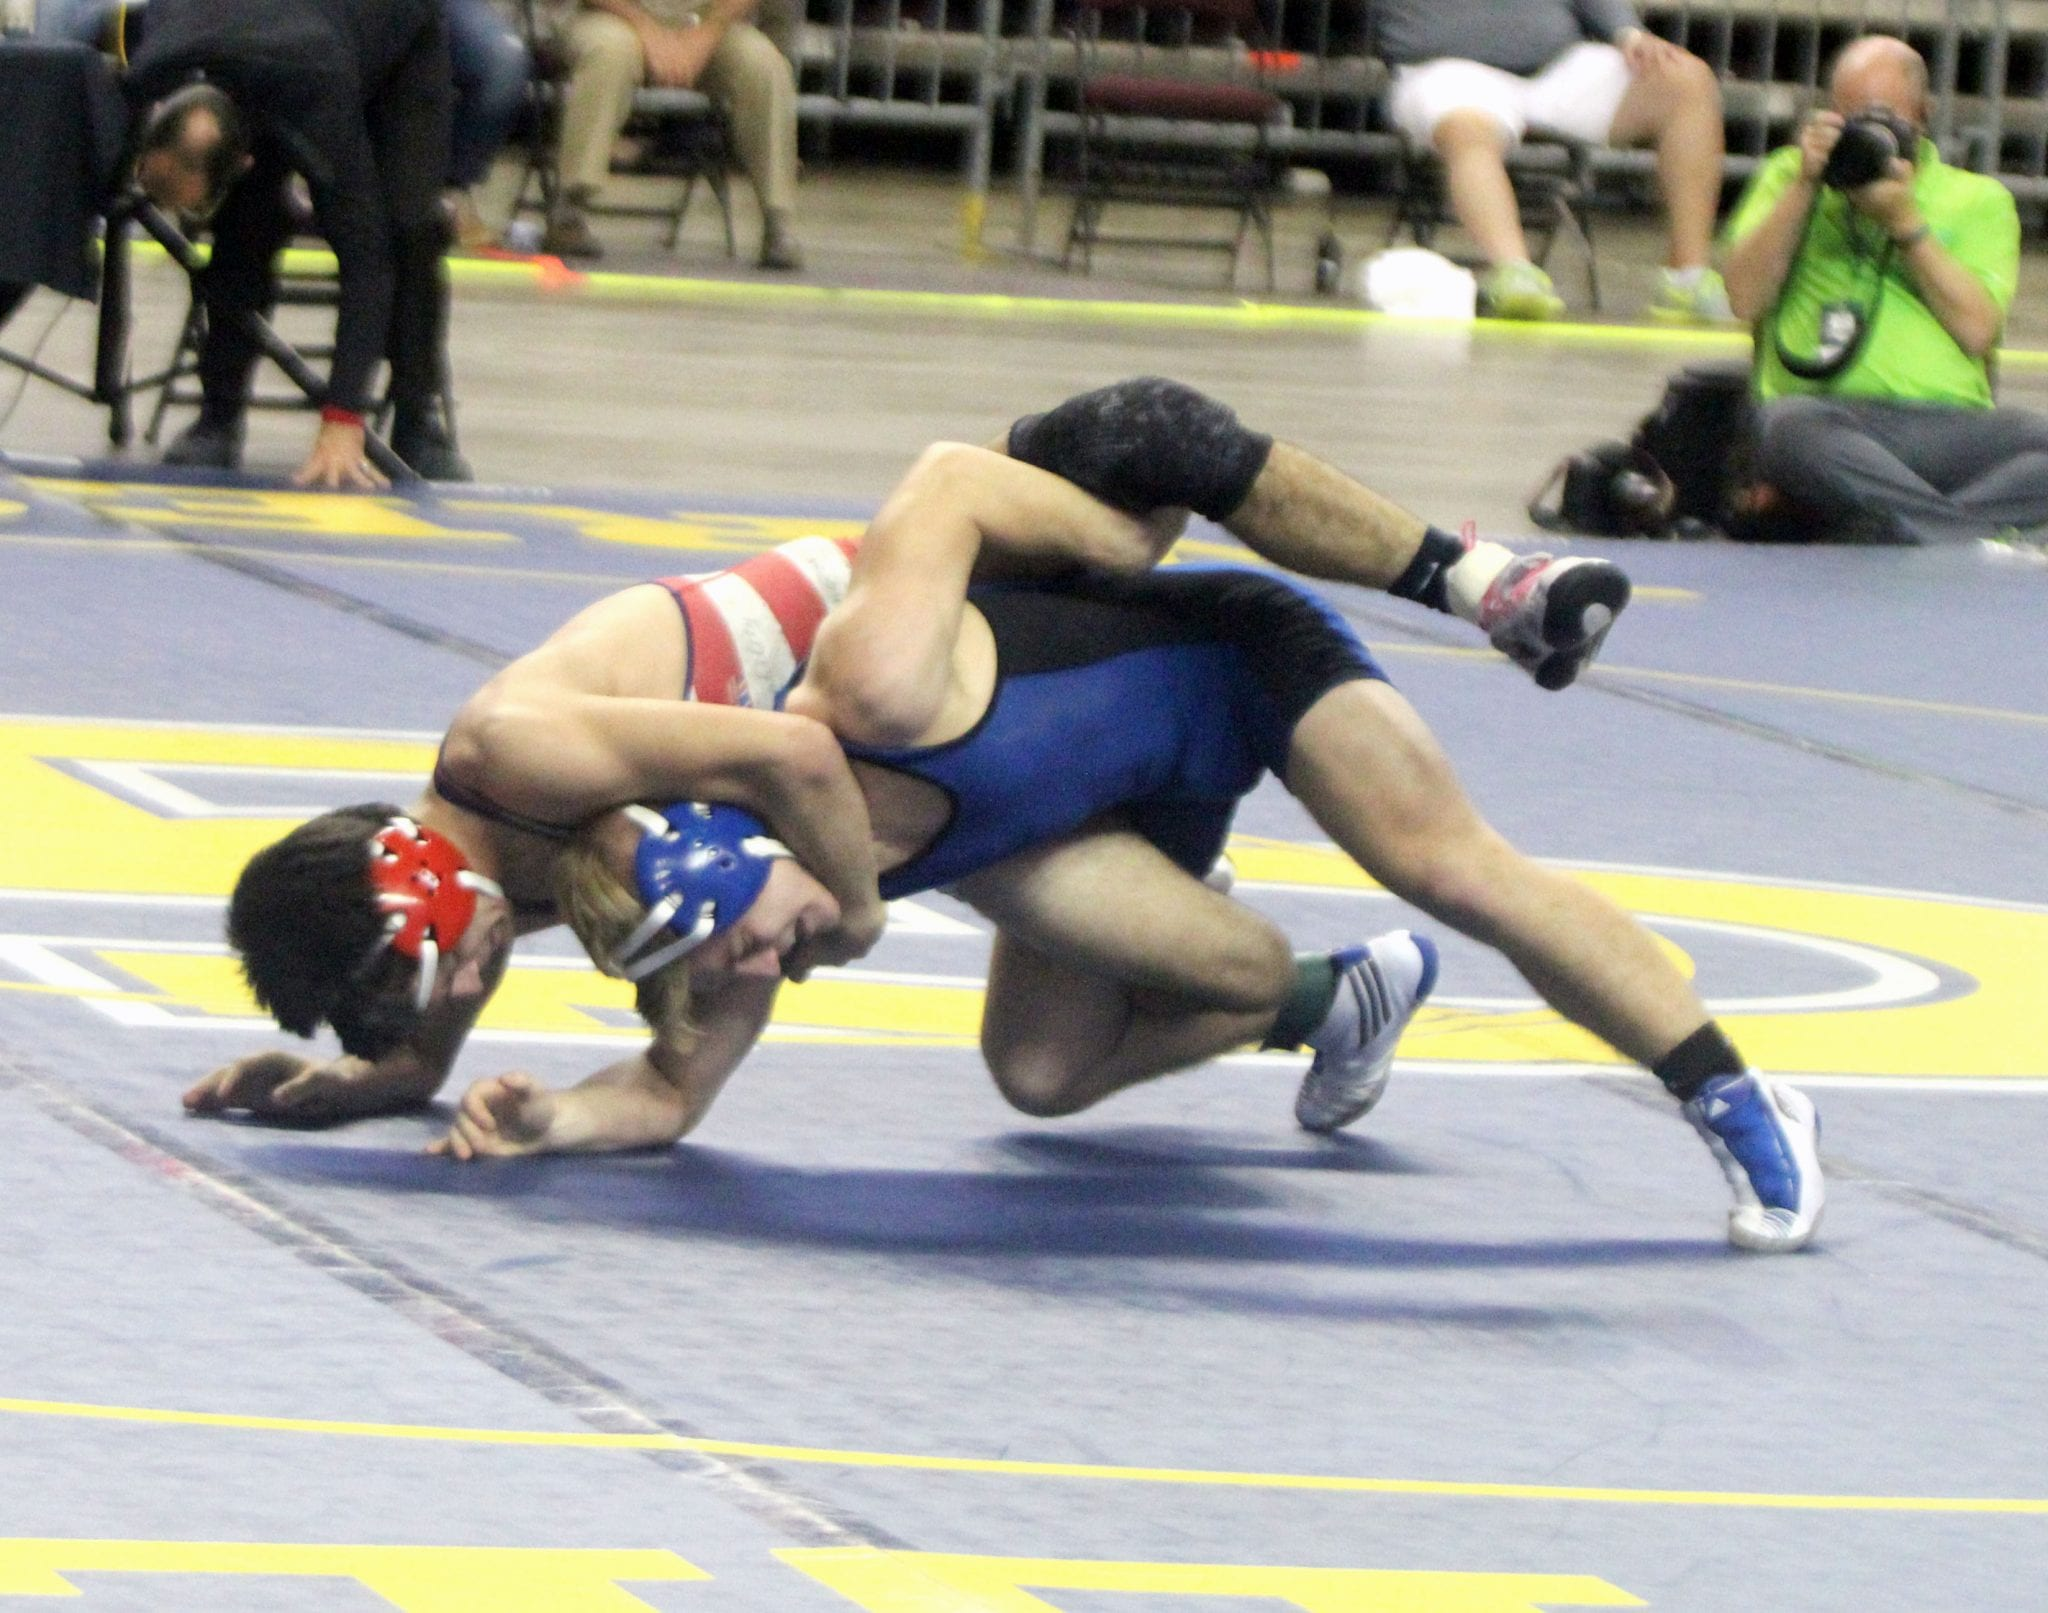 descriptive essay training for wrestling tournaments The benefits of wrestling: why you should wrestle in order to grasp its maximum benefit, be prepared to put forth 110 percent in training and competitions.